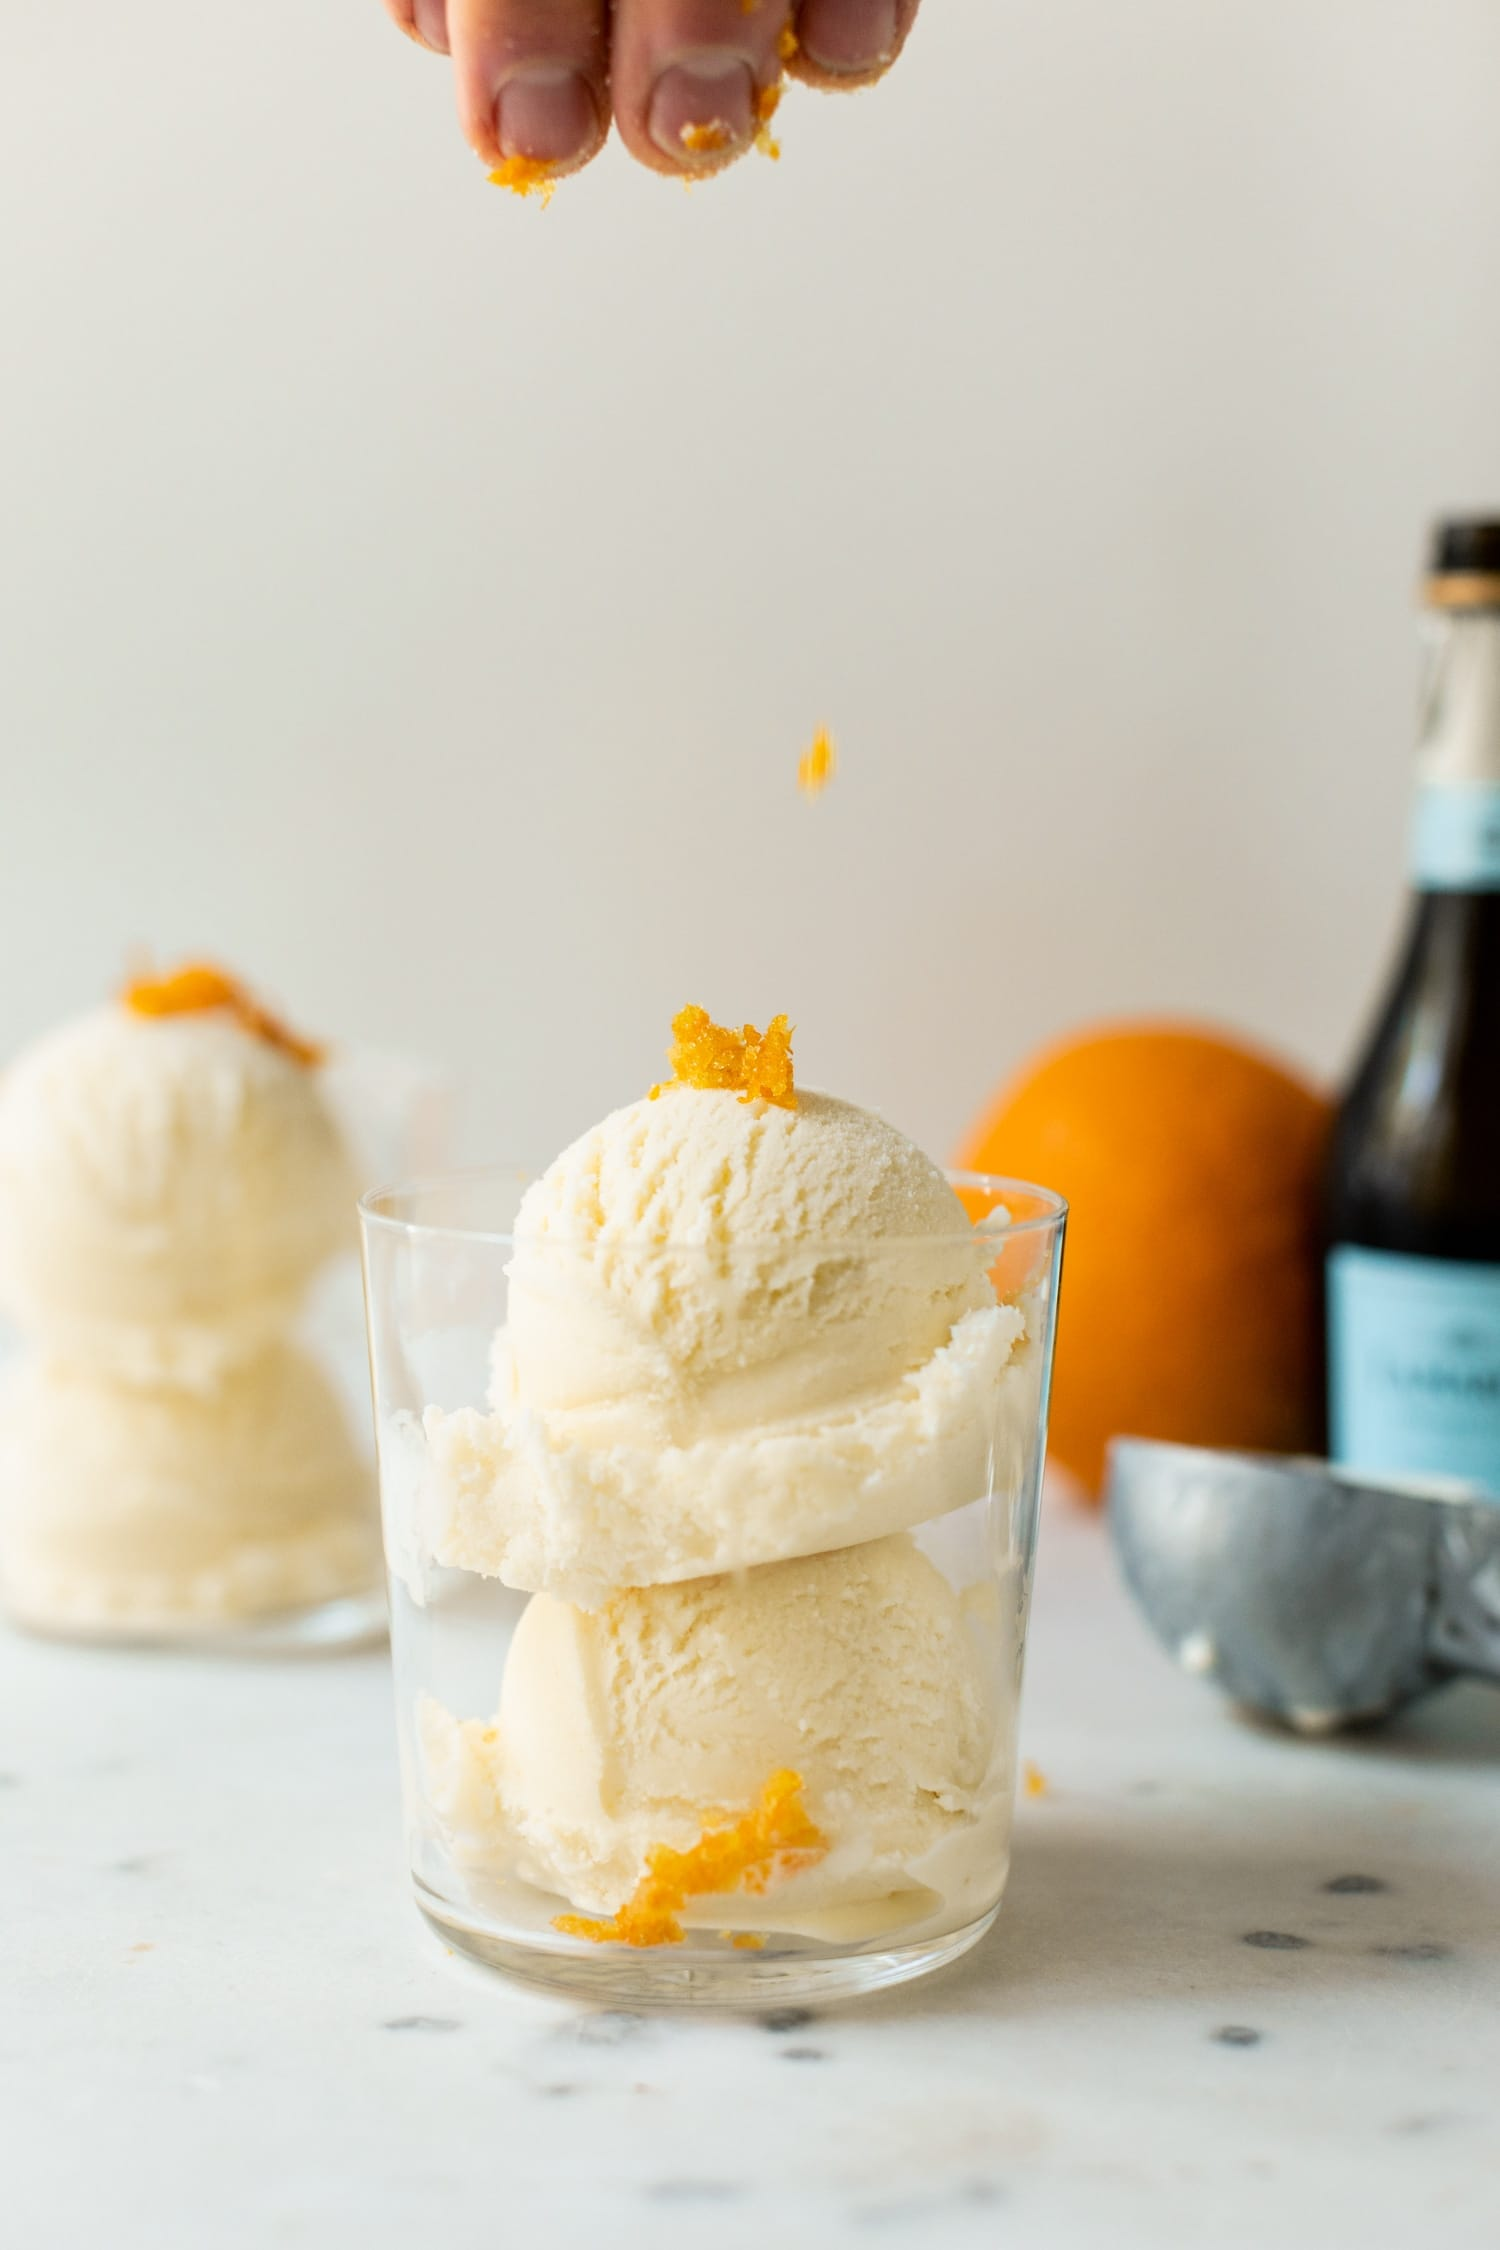 Mimosa ice cream being speckled with orange zest pieces from the top of the picture in a clear glass with second ice cream cup, orange, ice cream scoop and champagne bottle in background on a white marble surface